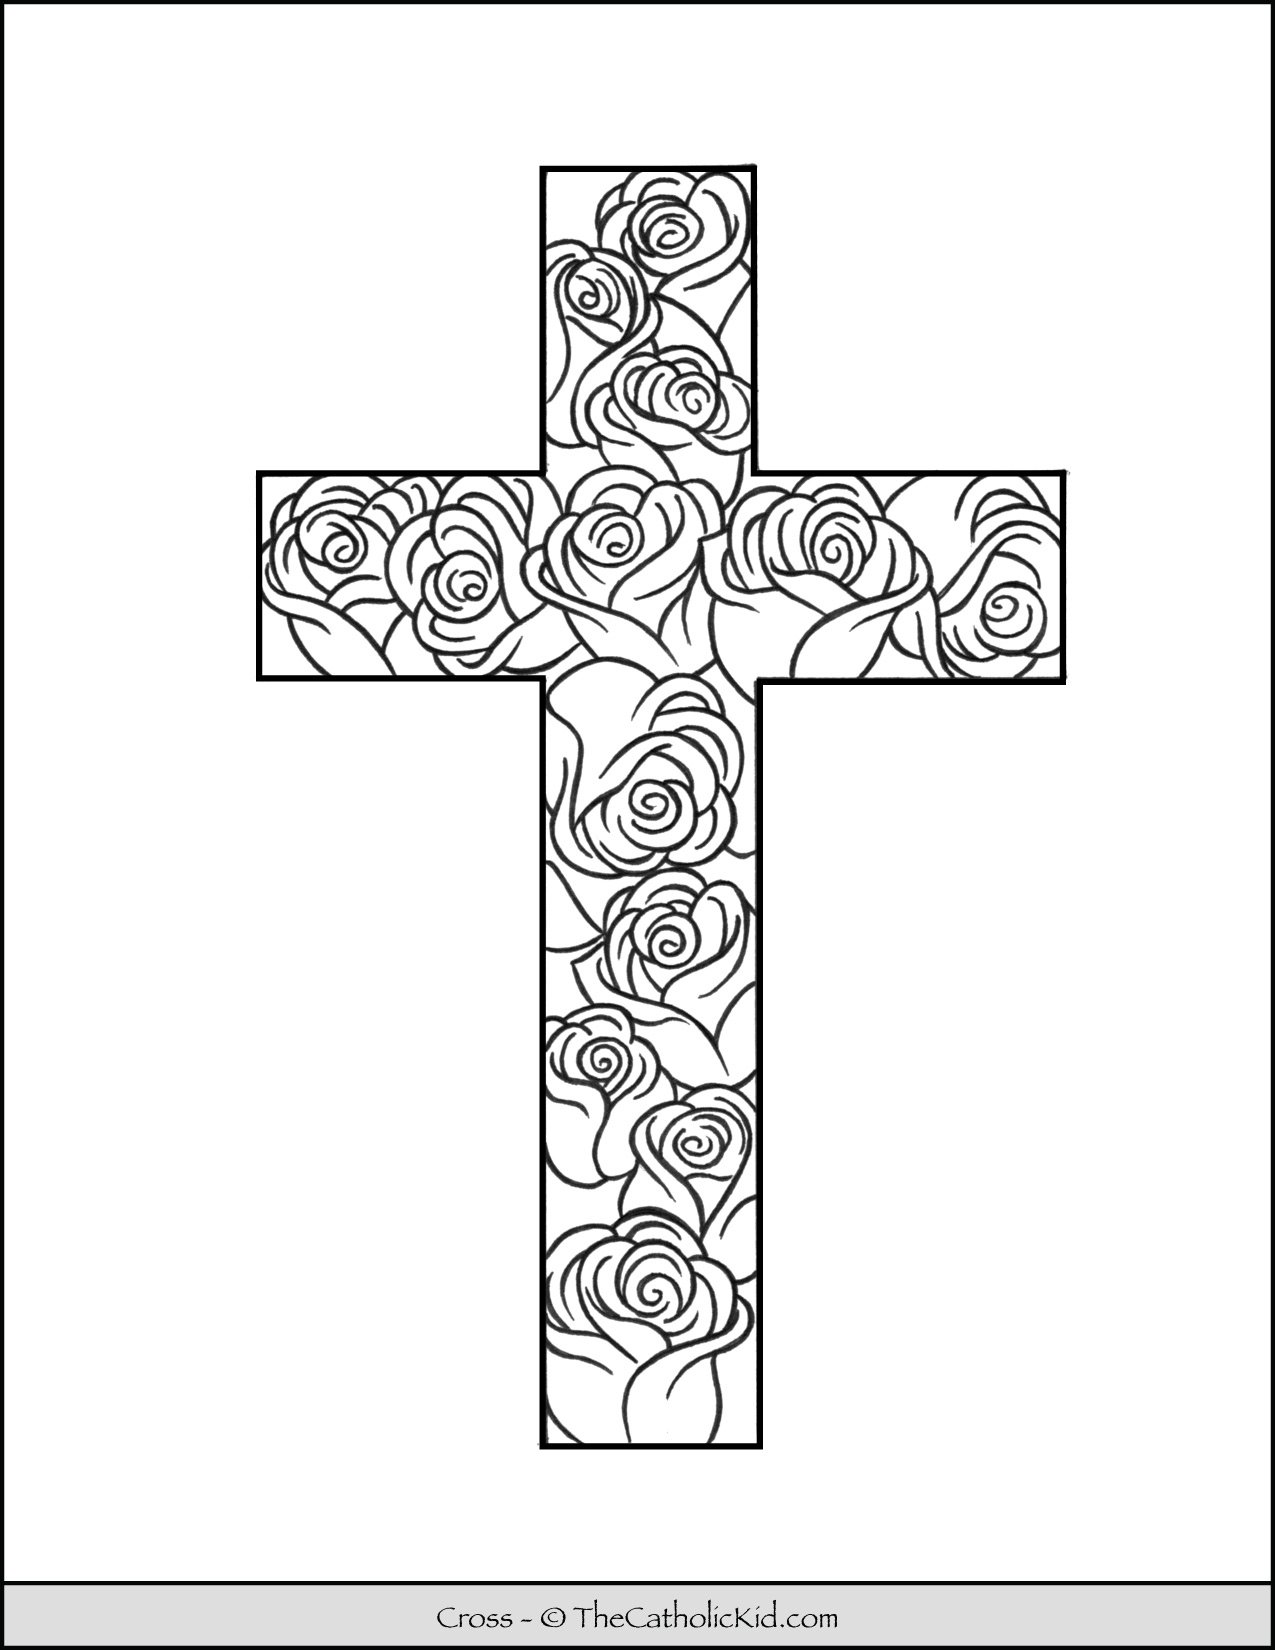 FREE 9+ Rose Coloring Pages in AI | 1650x1275